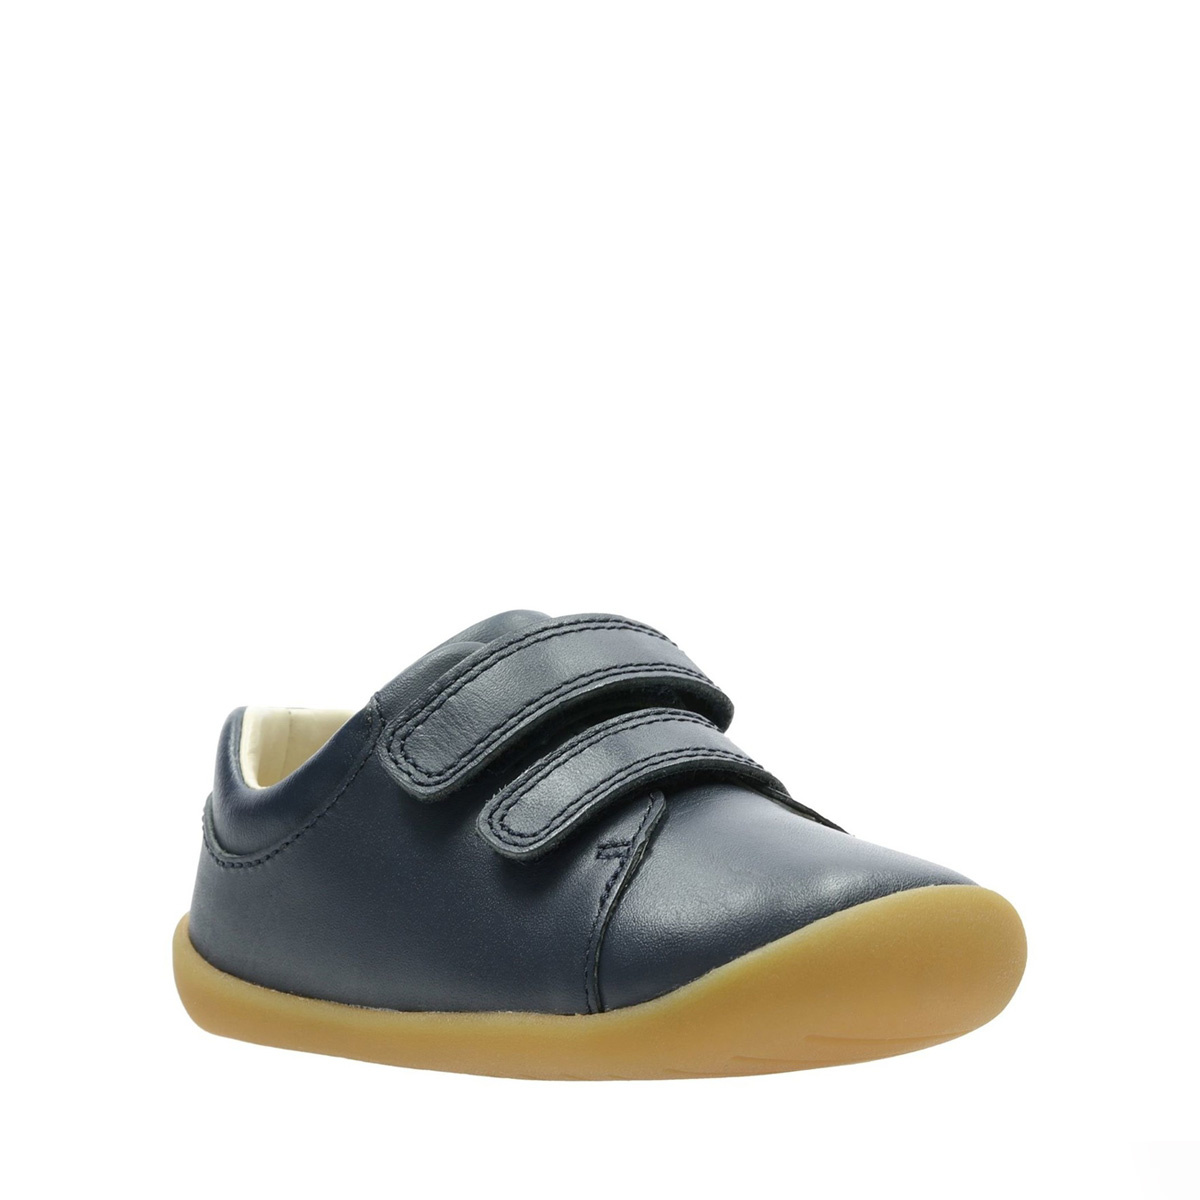 Clarks Roamer Craft Navy Leather